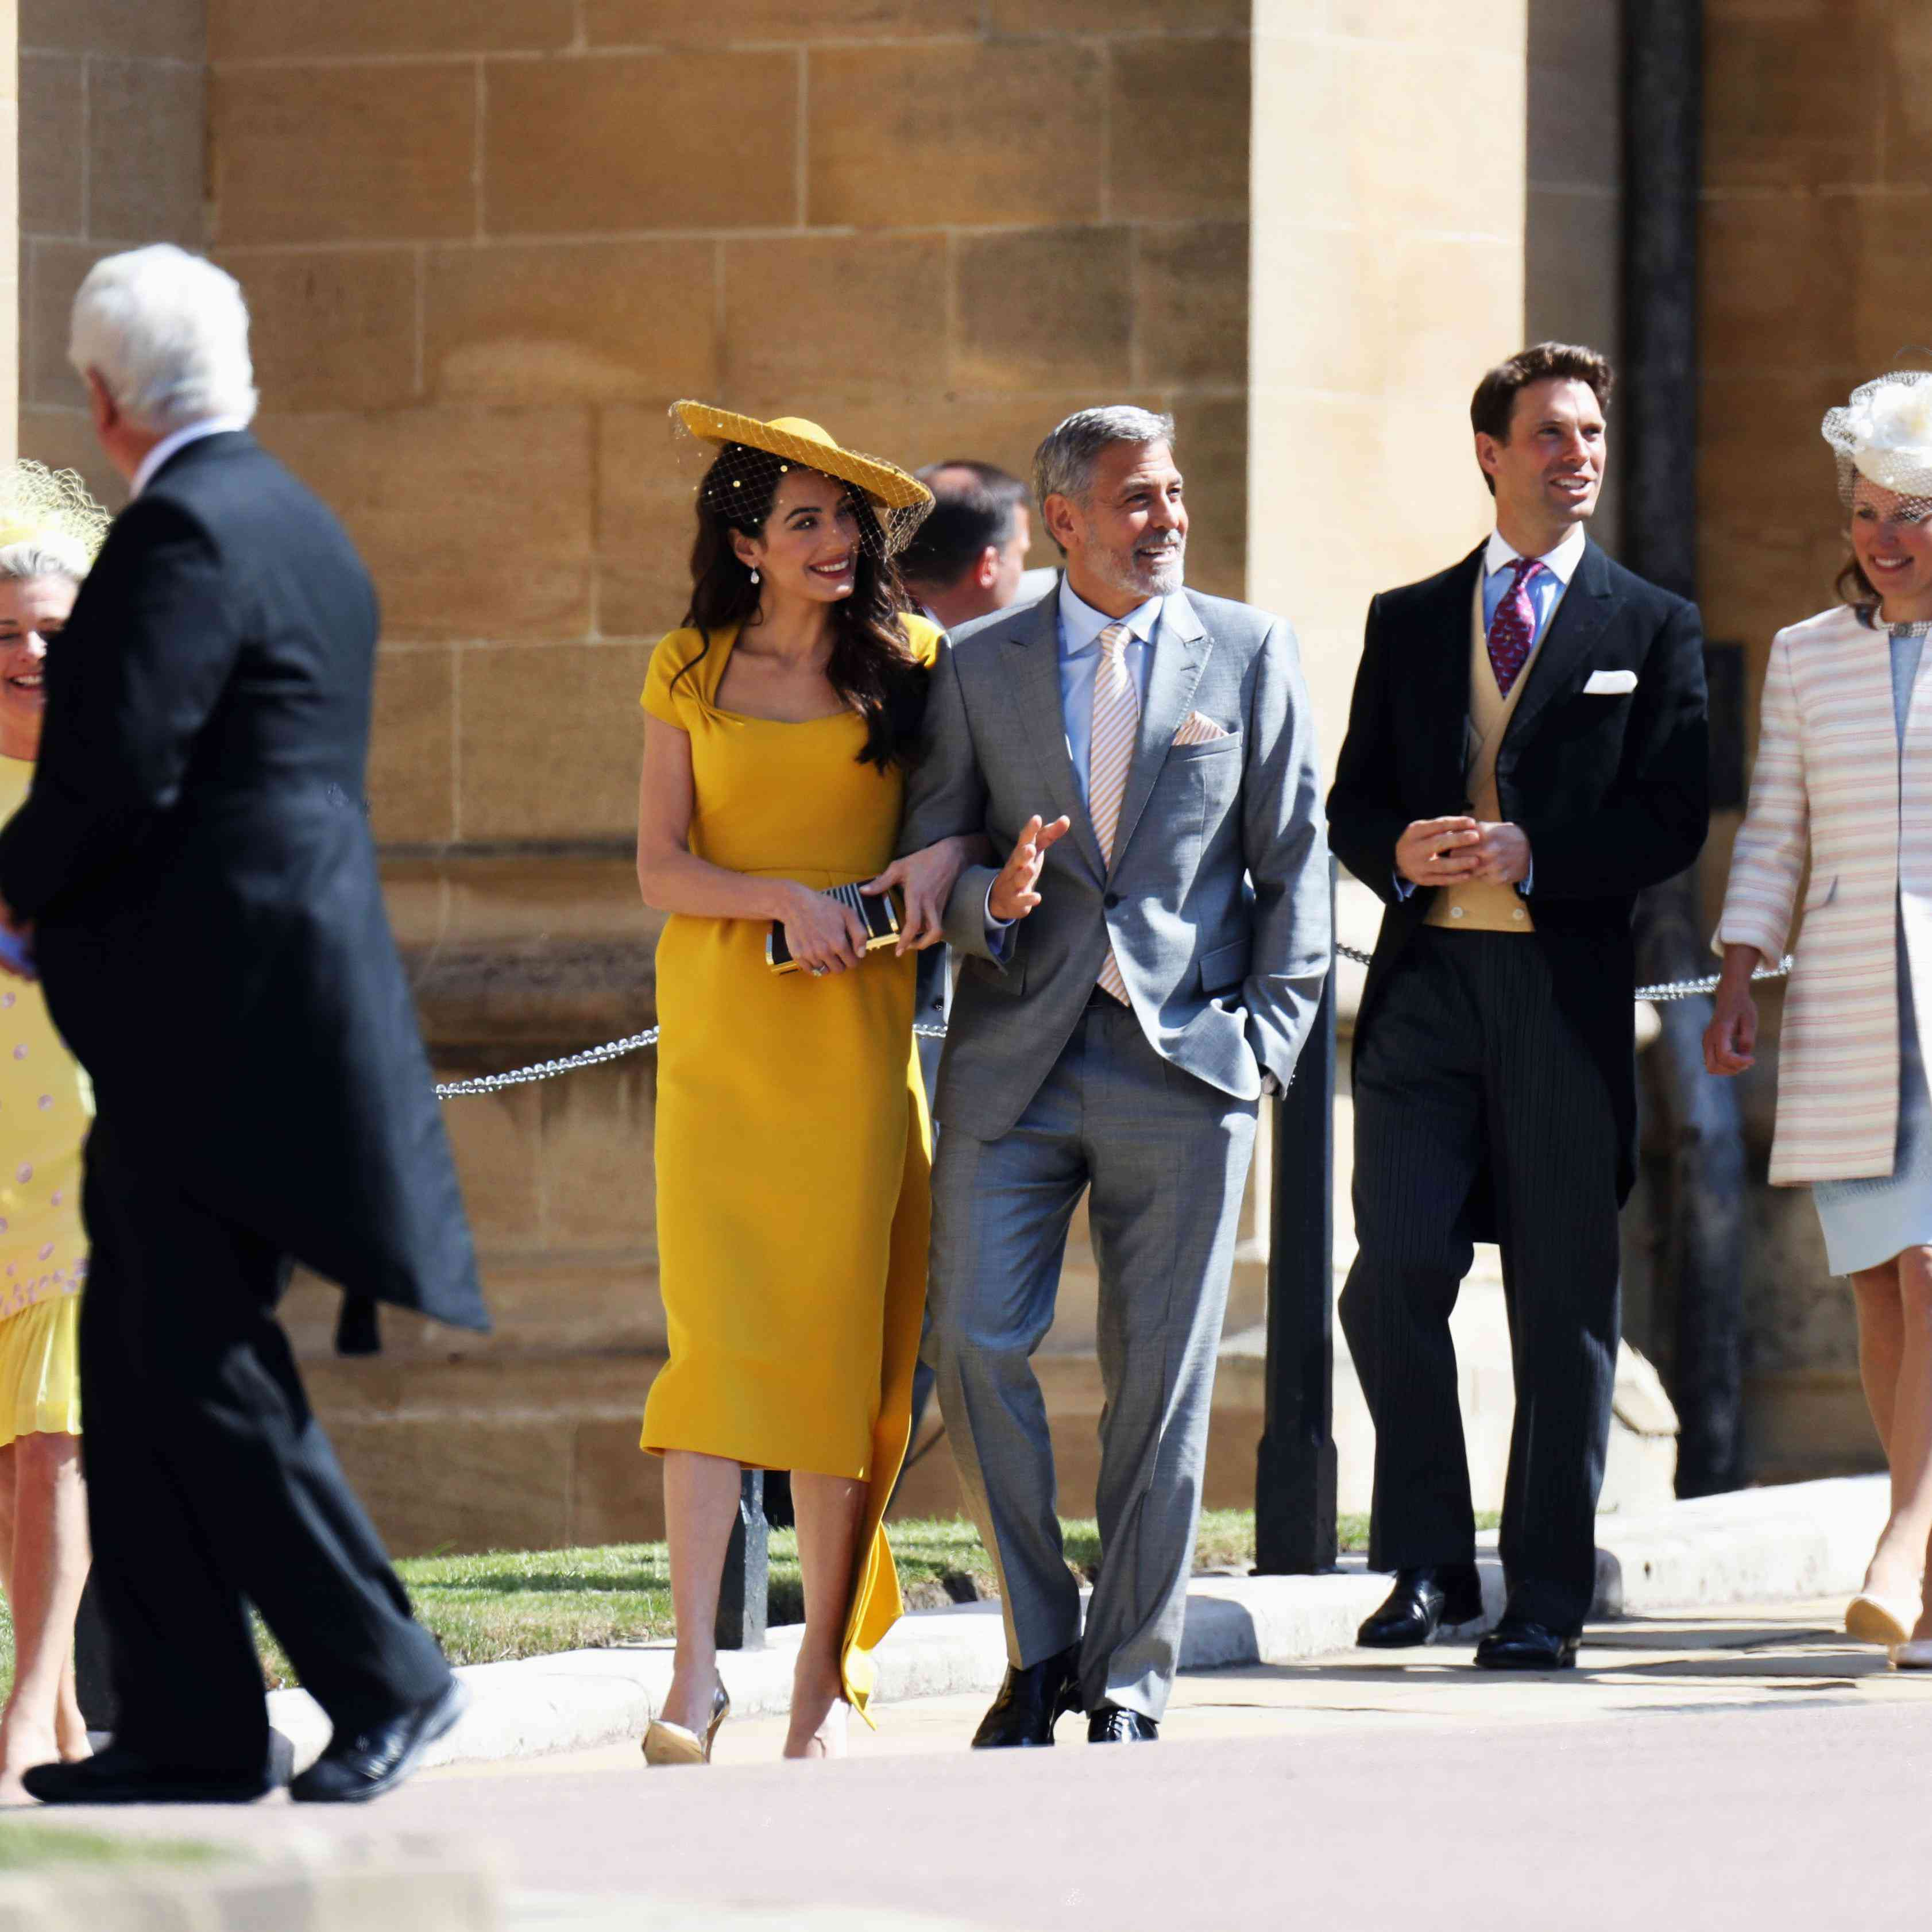 Celebrities Invited To Royal Wedding.Royal Wedding Guest List Celebrities Who Attended The Nuptials